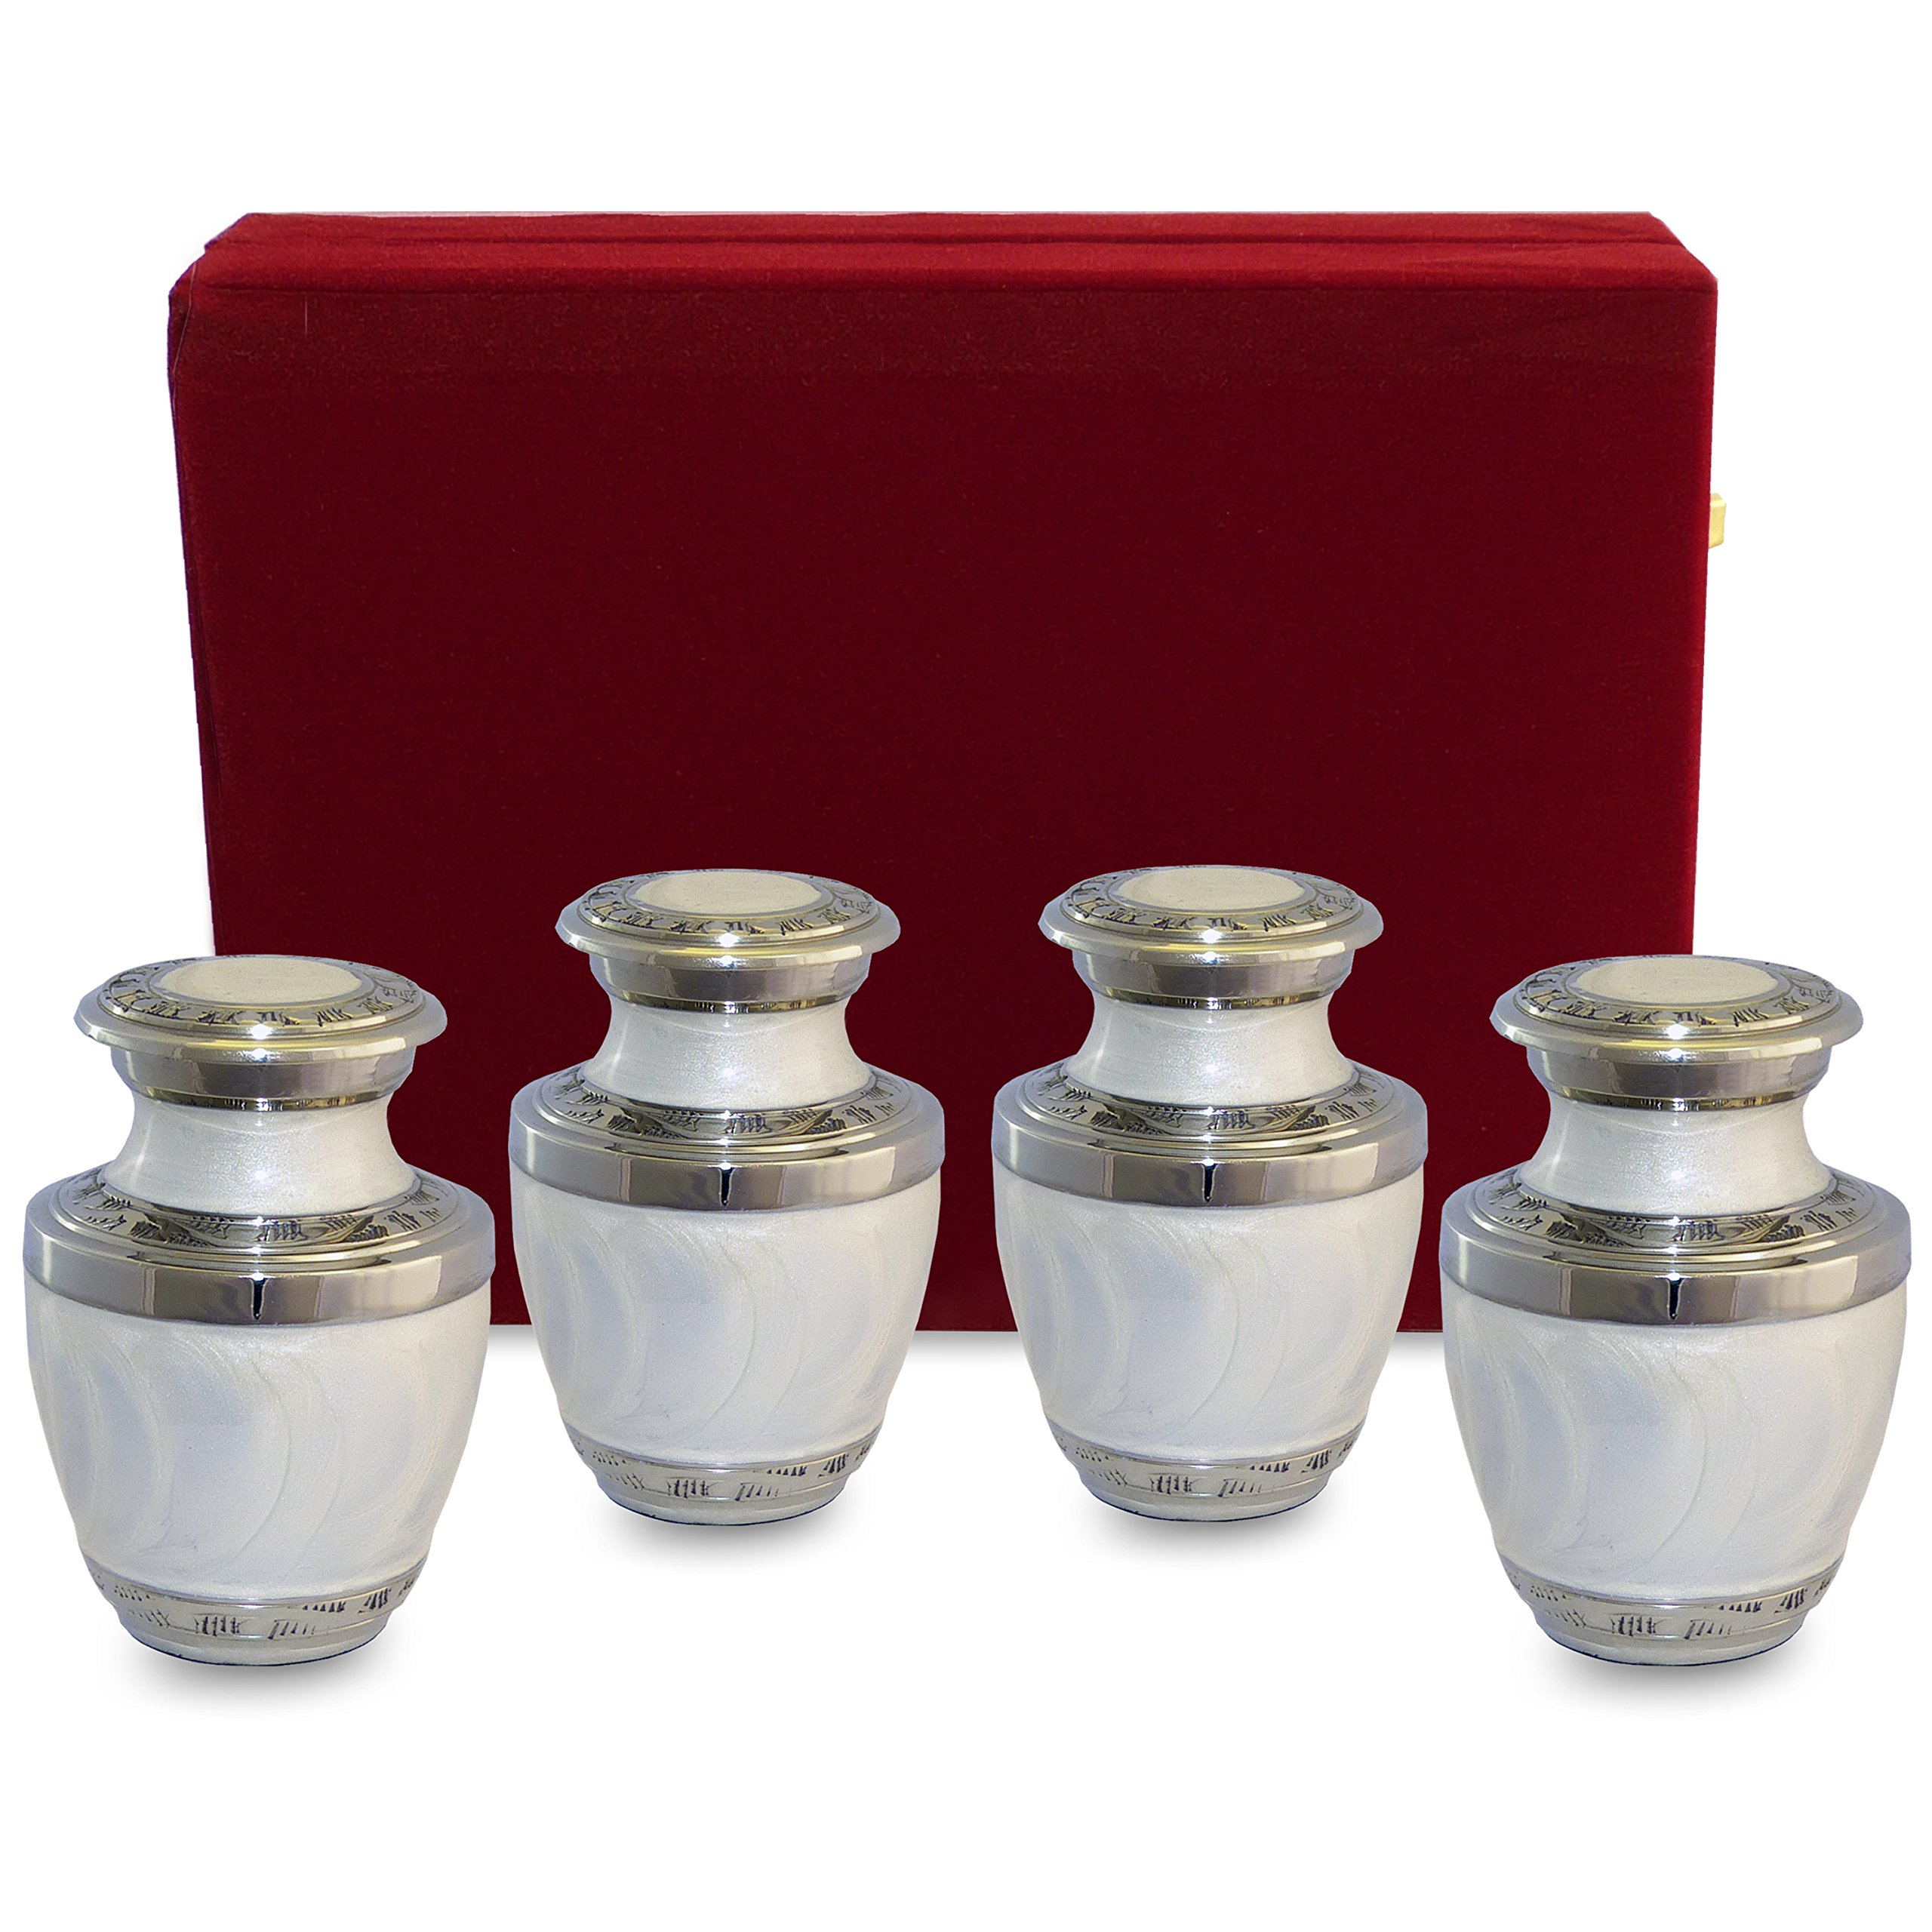 Everlasting Love White Small Keepsake Urns For Human Ashes - Set of 4 - Beautiful and Timeless Find Comfort Everytime You Look At These Mini Cremation Urns - With Velvet Case